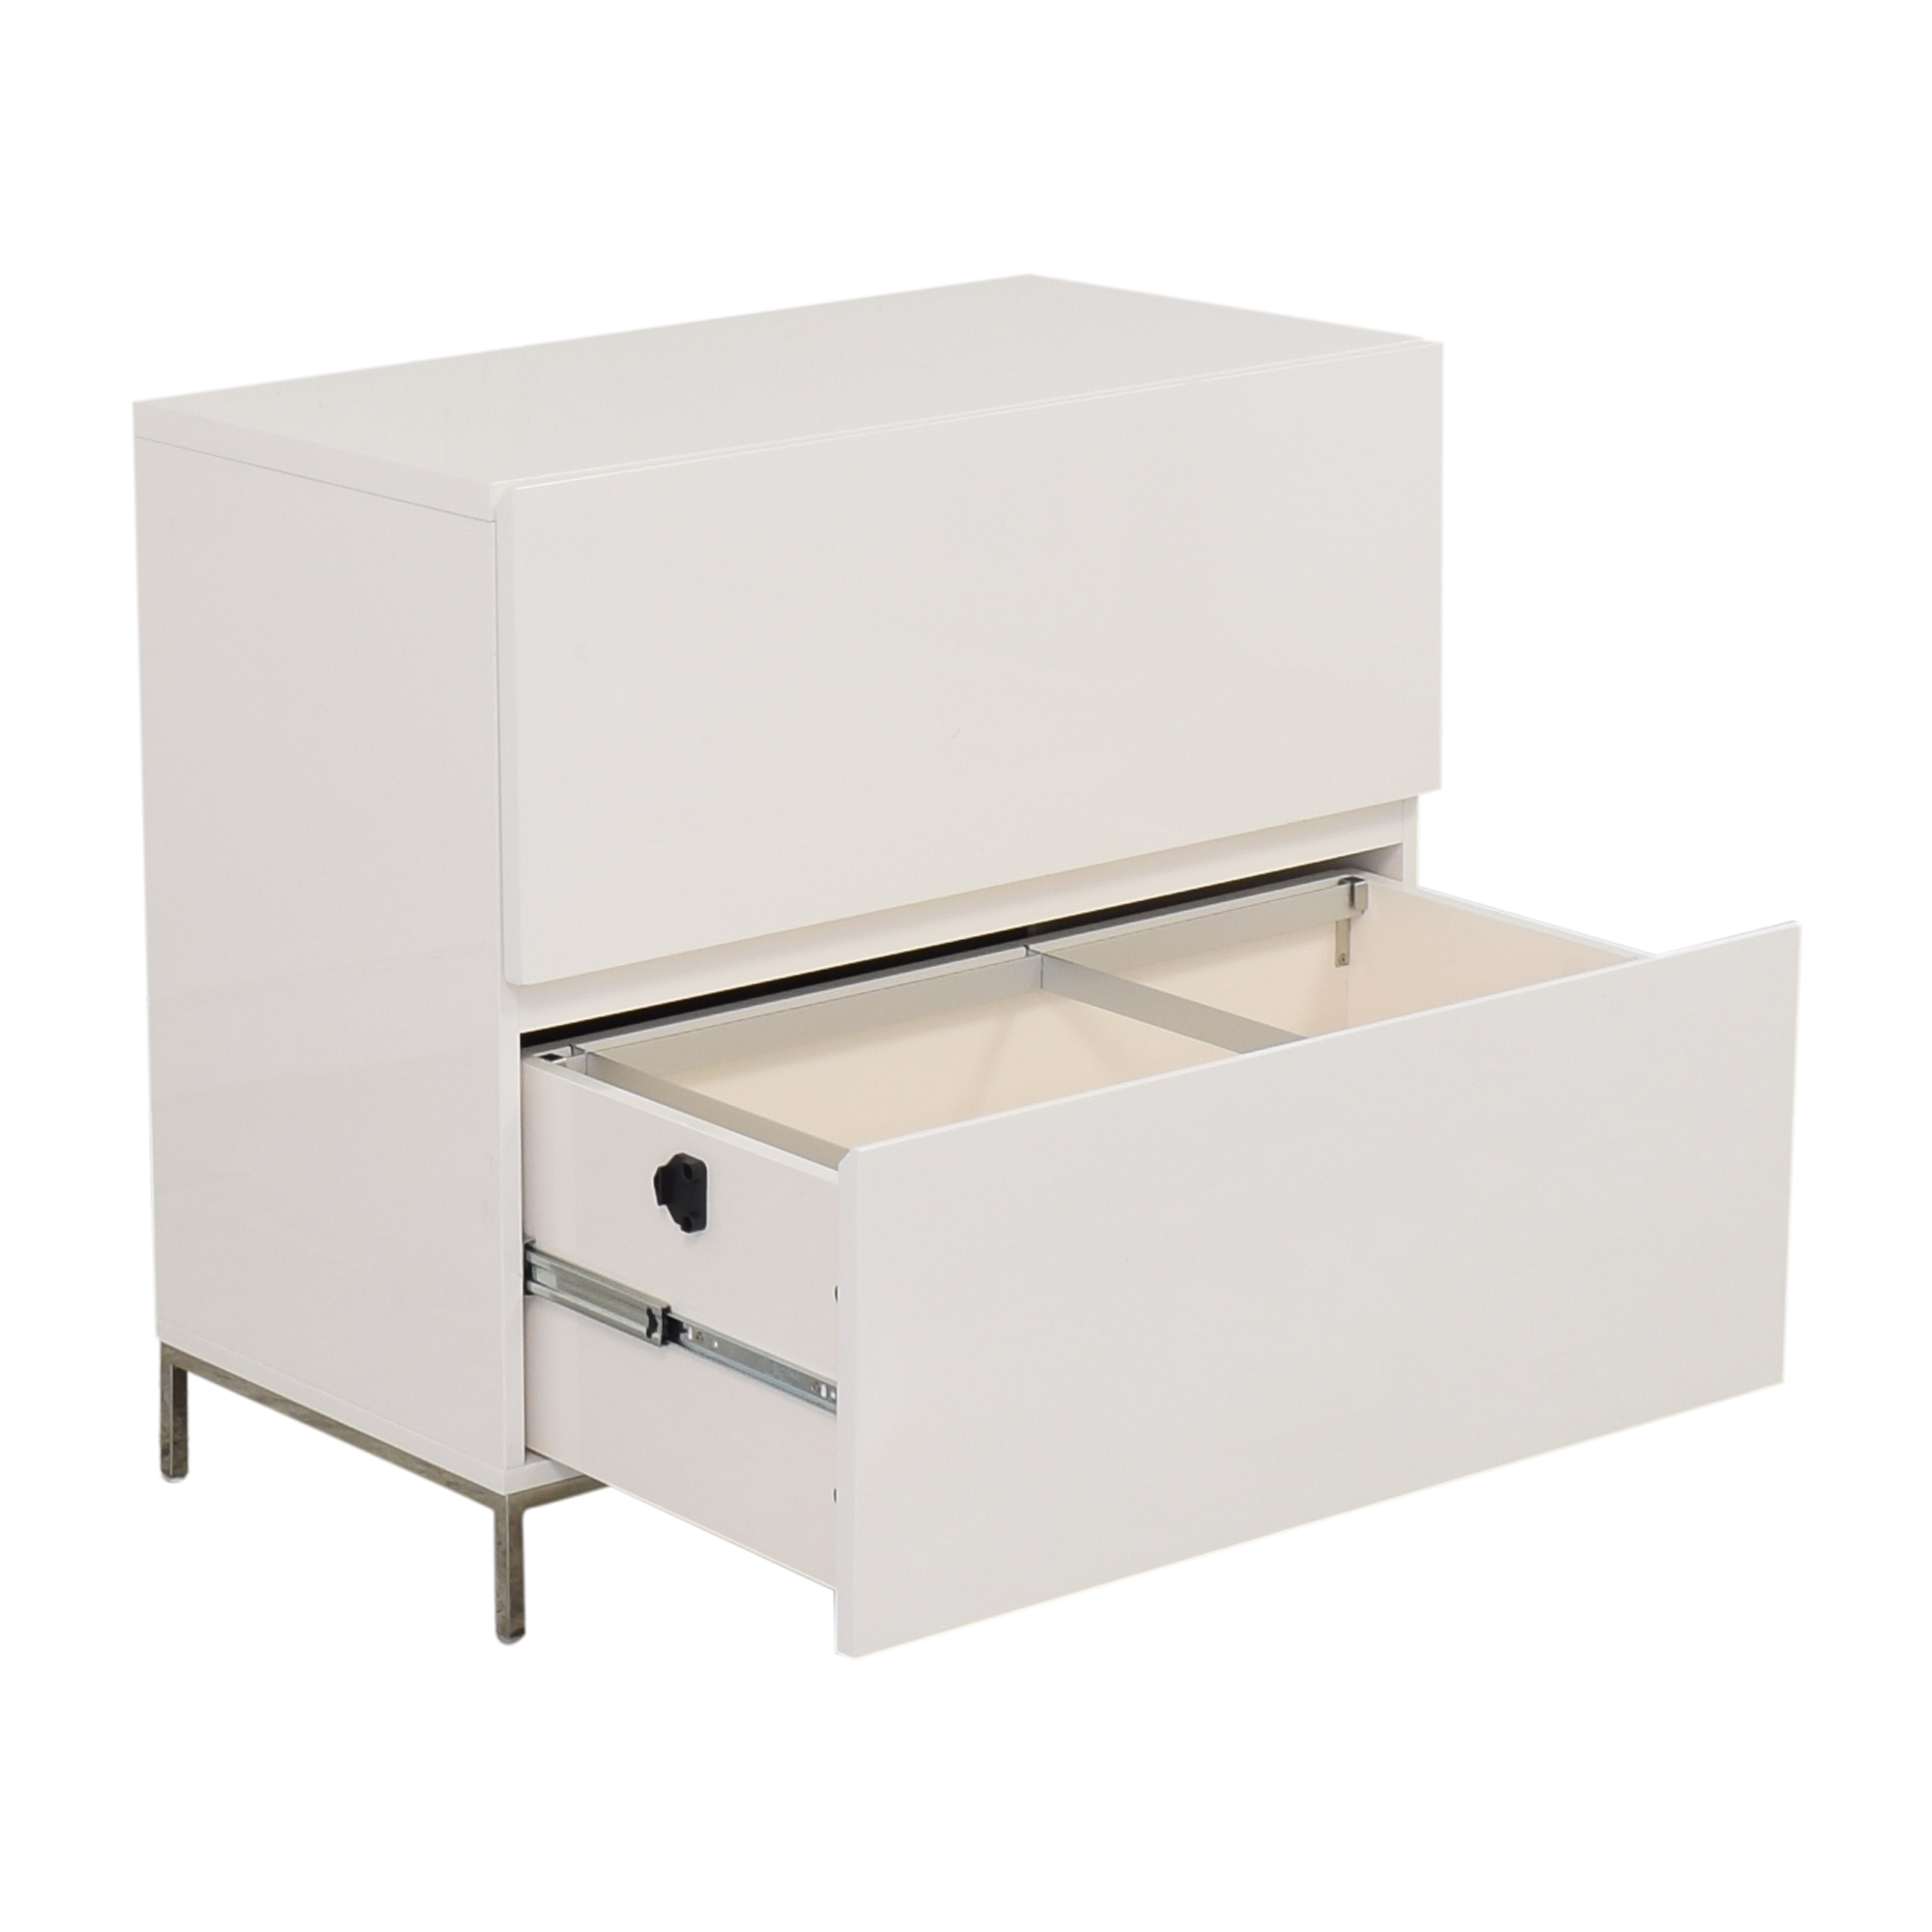 West Elm West Elm Lacquer Storage Modular Lateral File Cabinet second hand